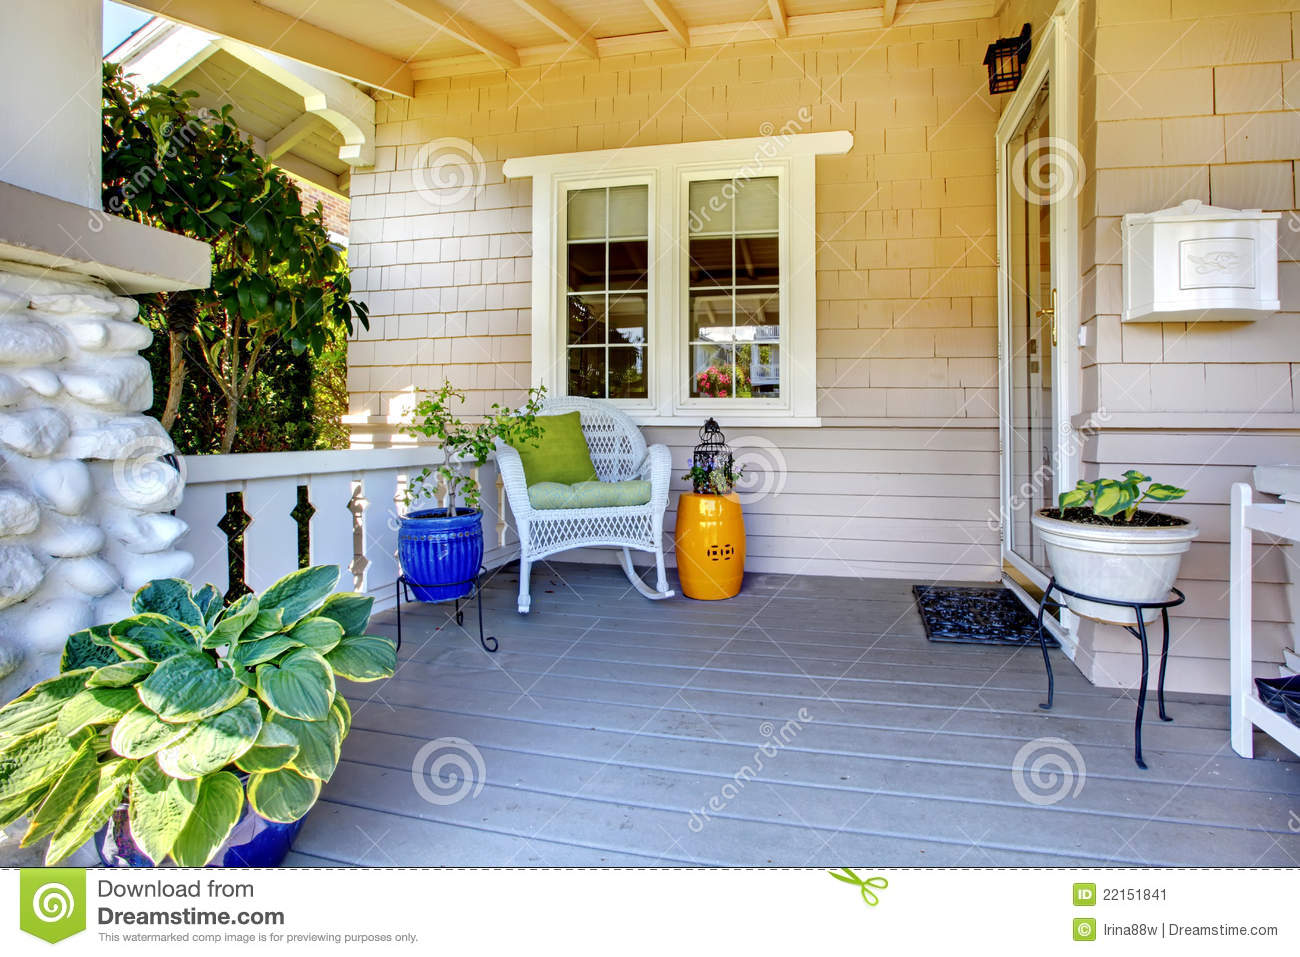 Covered Entrance Porch With Plants And Chair Stock Image